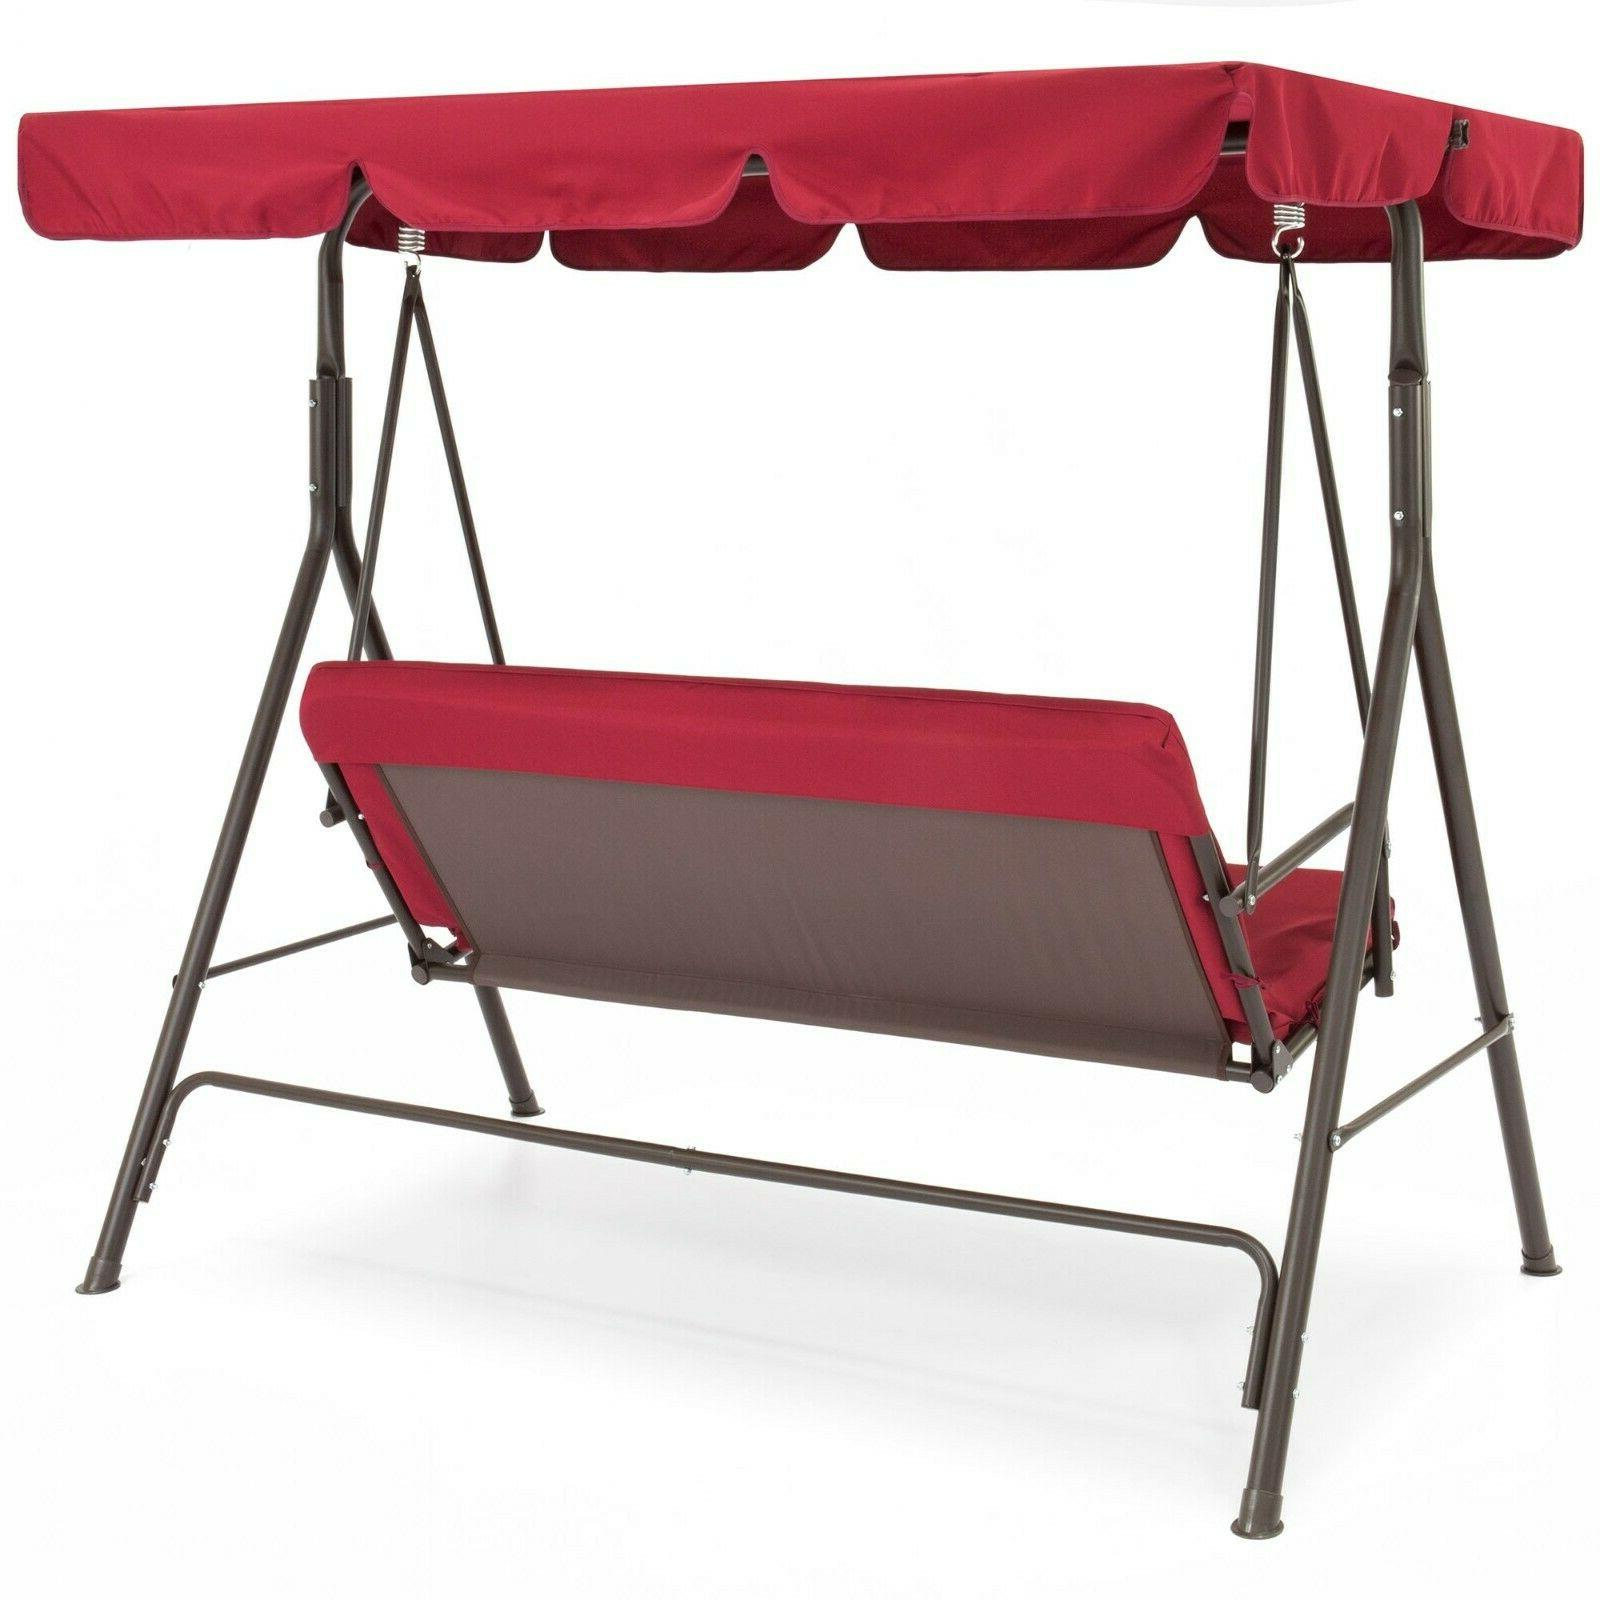 2 Person Swing Bench Patio Cushions